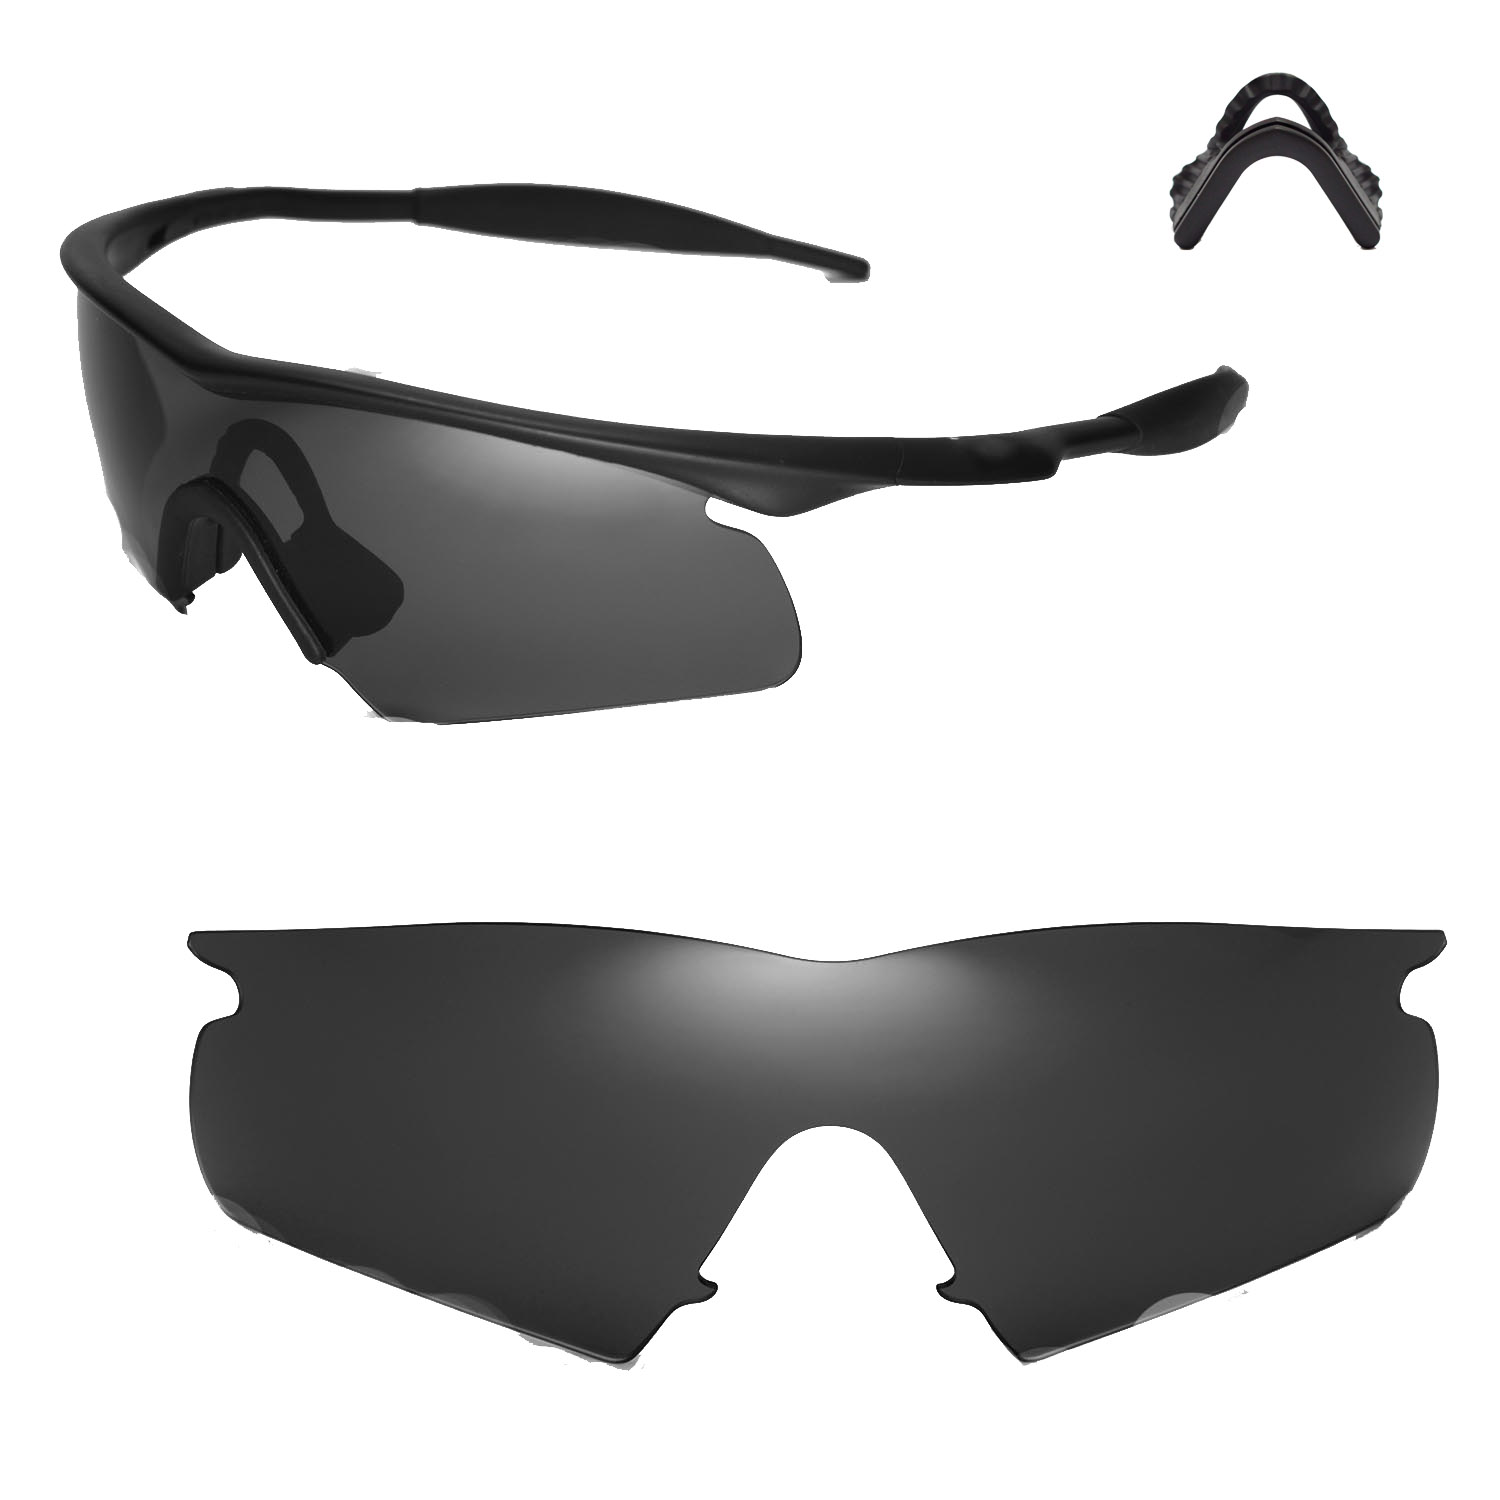 414b4a08d13 Details about New Walleva Black Replacement Lenses For Oakley New M Frame  Hybrid Sunglasses. 1.0 average based on 1 product rating. 5. 0